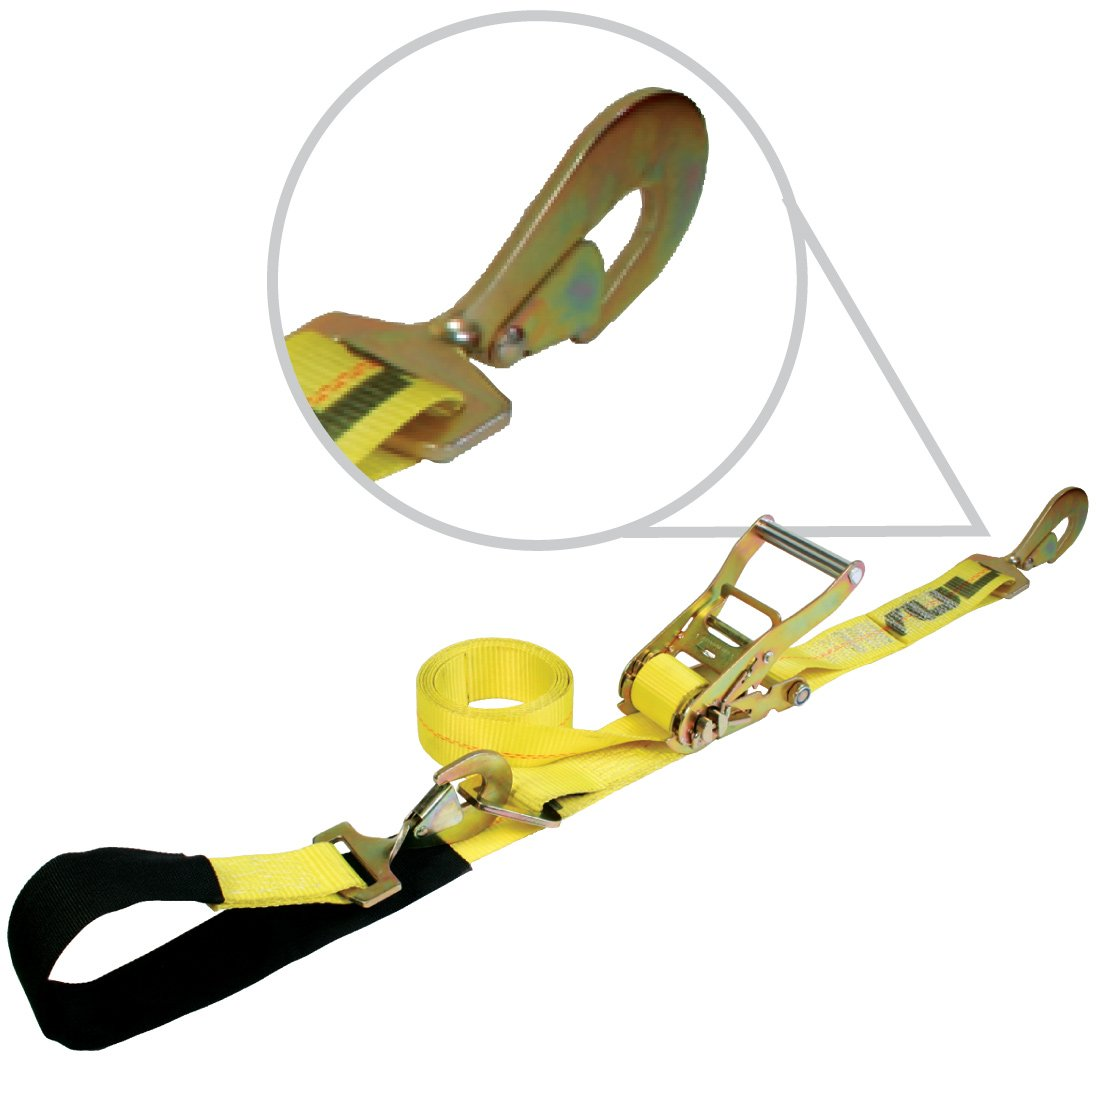 2 Inch x 114 Inch VULCAN 1-Ply Flexible Axle Tie Down Combo Strap with Snap Hook Ratchet PROSeries 4 Pack 3,300 Pound Safe Working Load